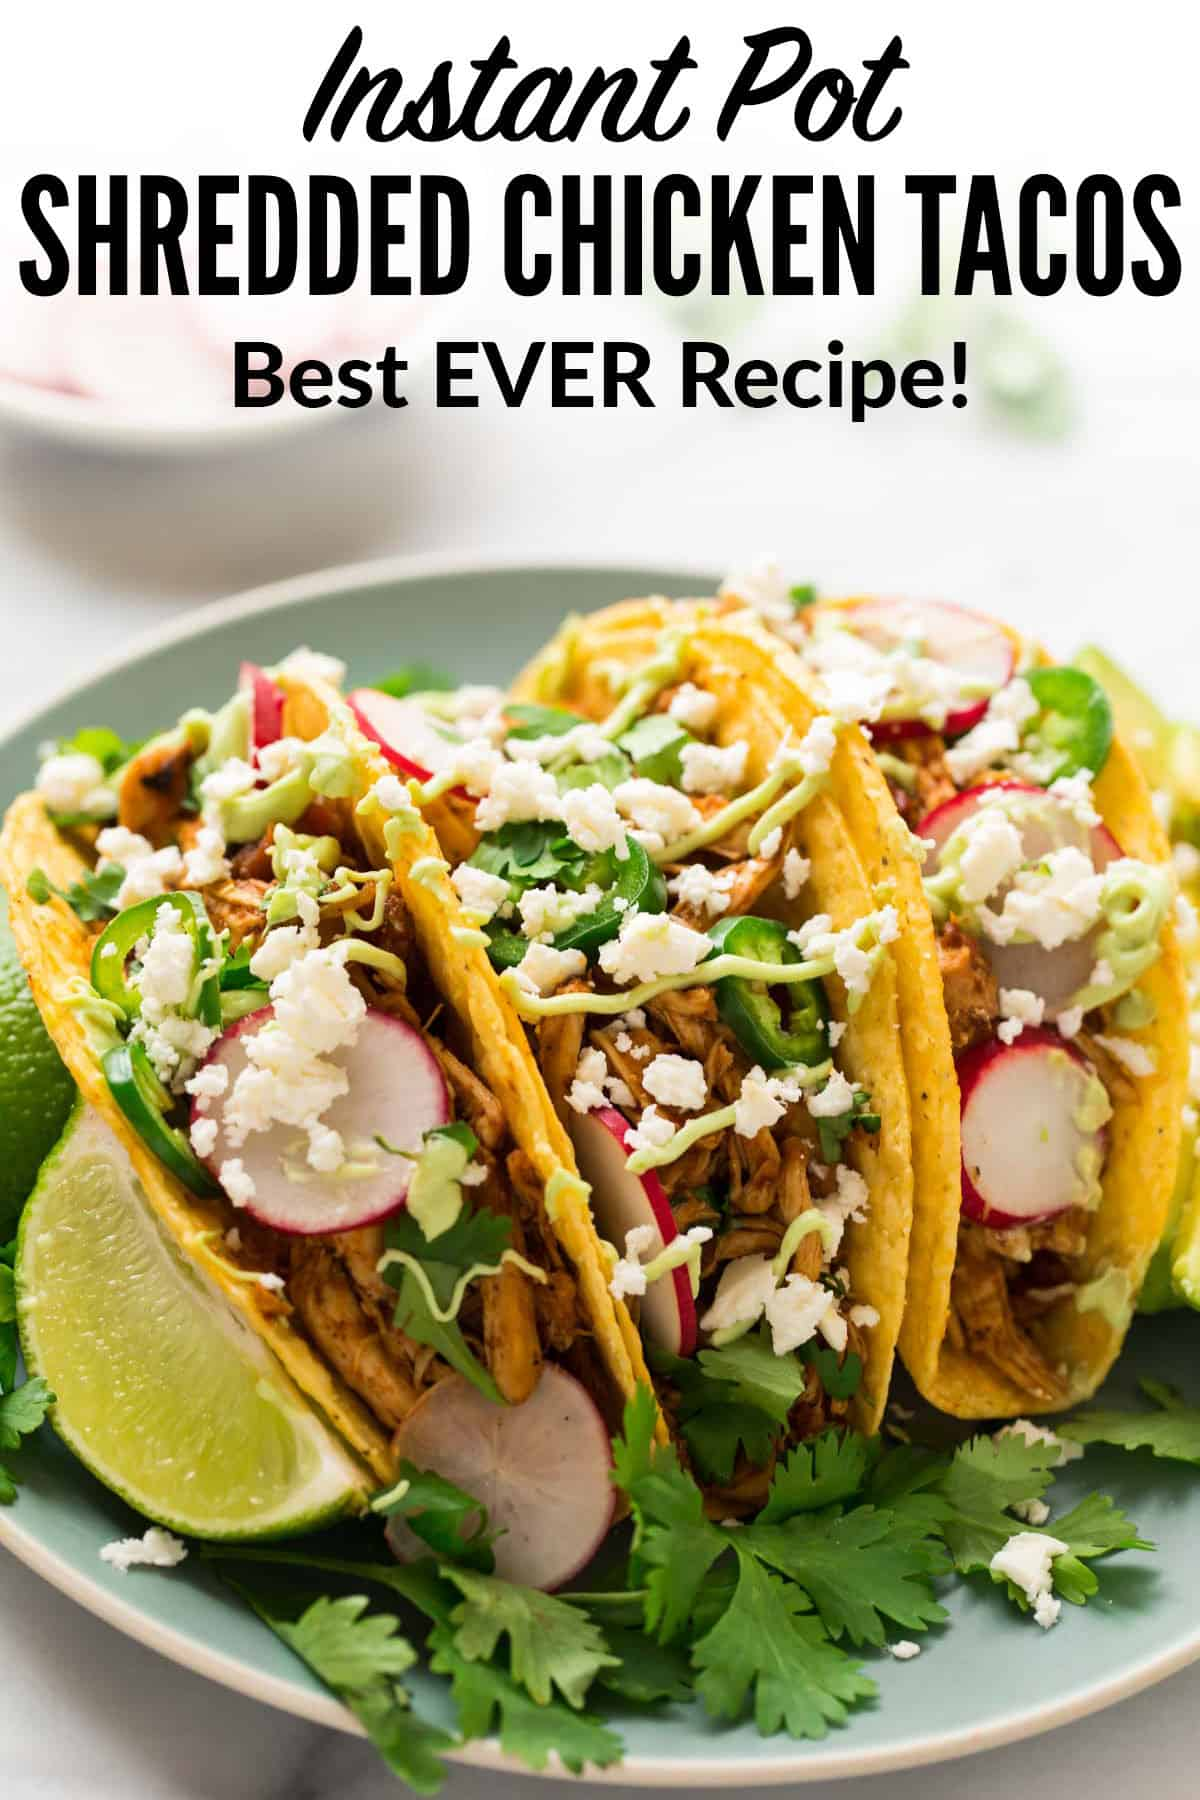 The BEST EVER Instant Pot Shredded Chicken Tacos! Easy, juicy pressure cooker Mexican chicken that's healthy and full of flavor. Use it for tacos, burritos, taco bowls, or mix with black beans and rice. #pressurecooker #instantpot #shreddedchicken #healthy